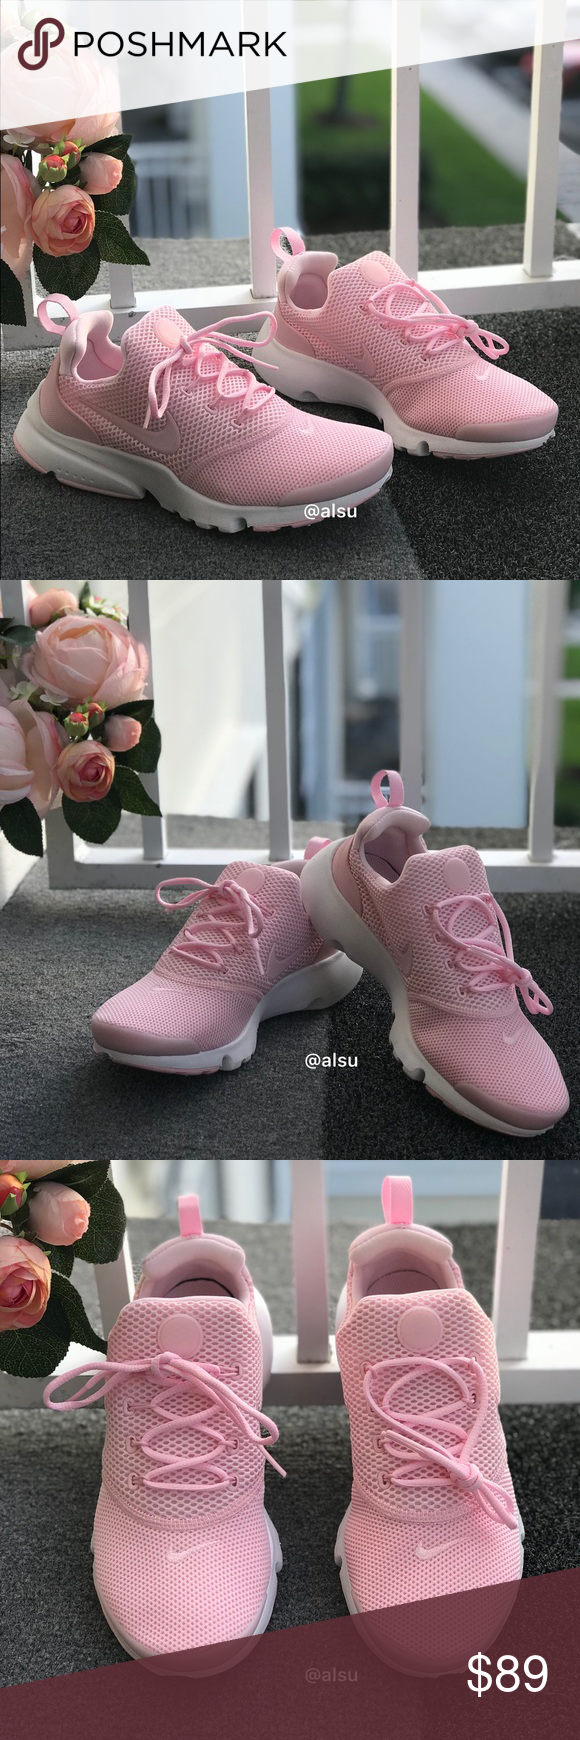 28714e38a16 NWT Nike Presto FLY Prism Pink WMNS Brand new with box